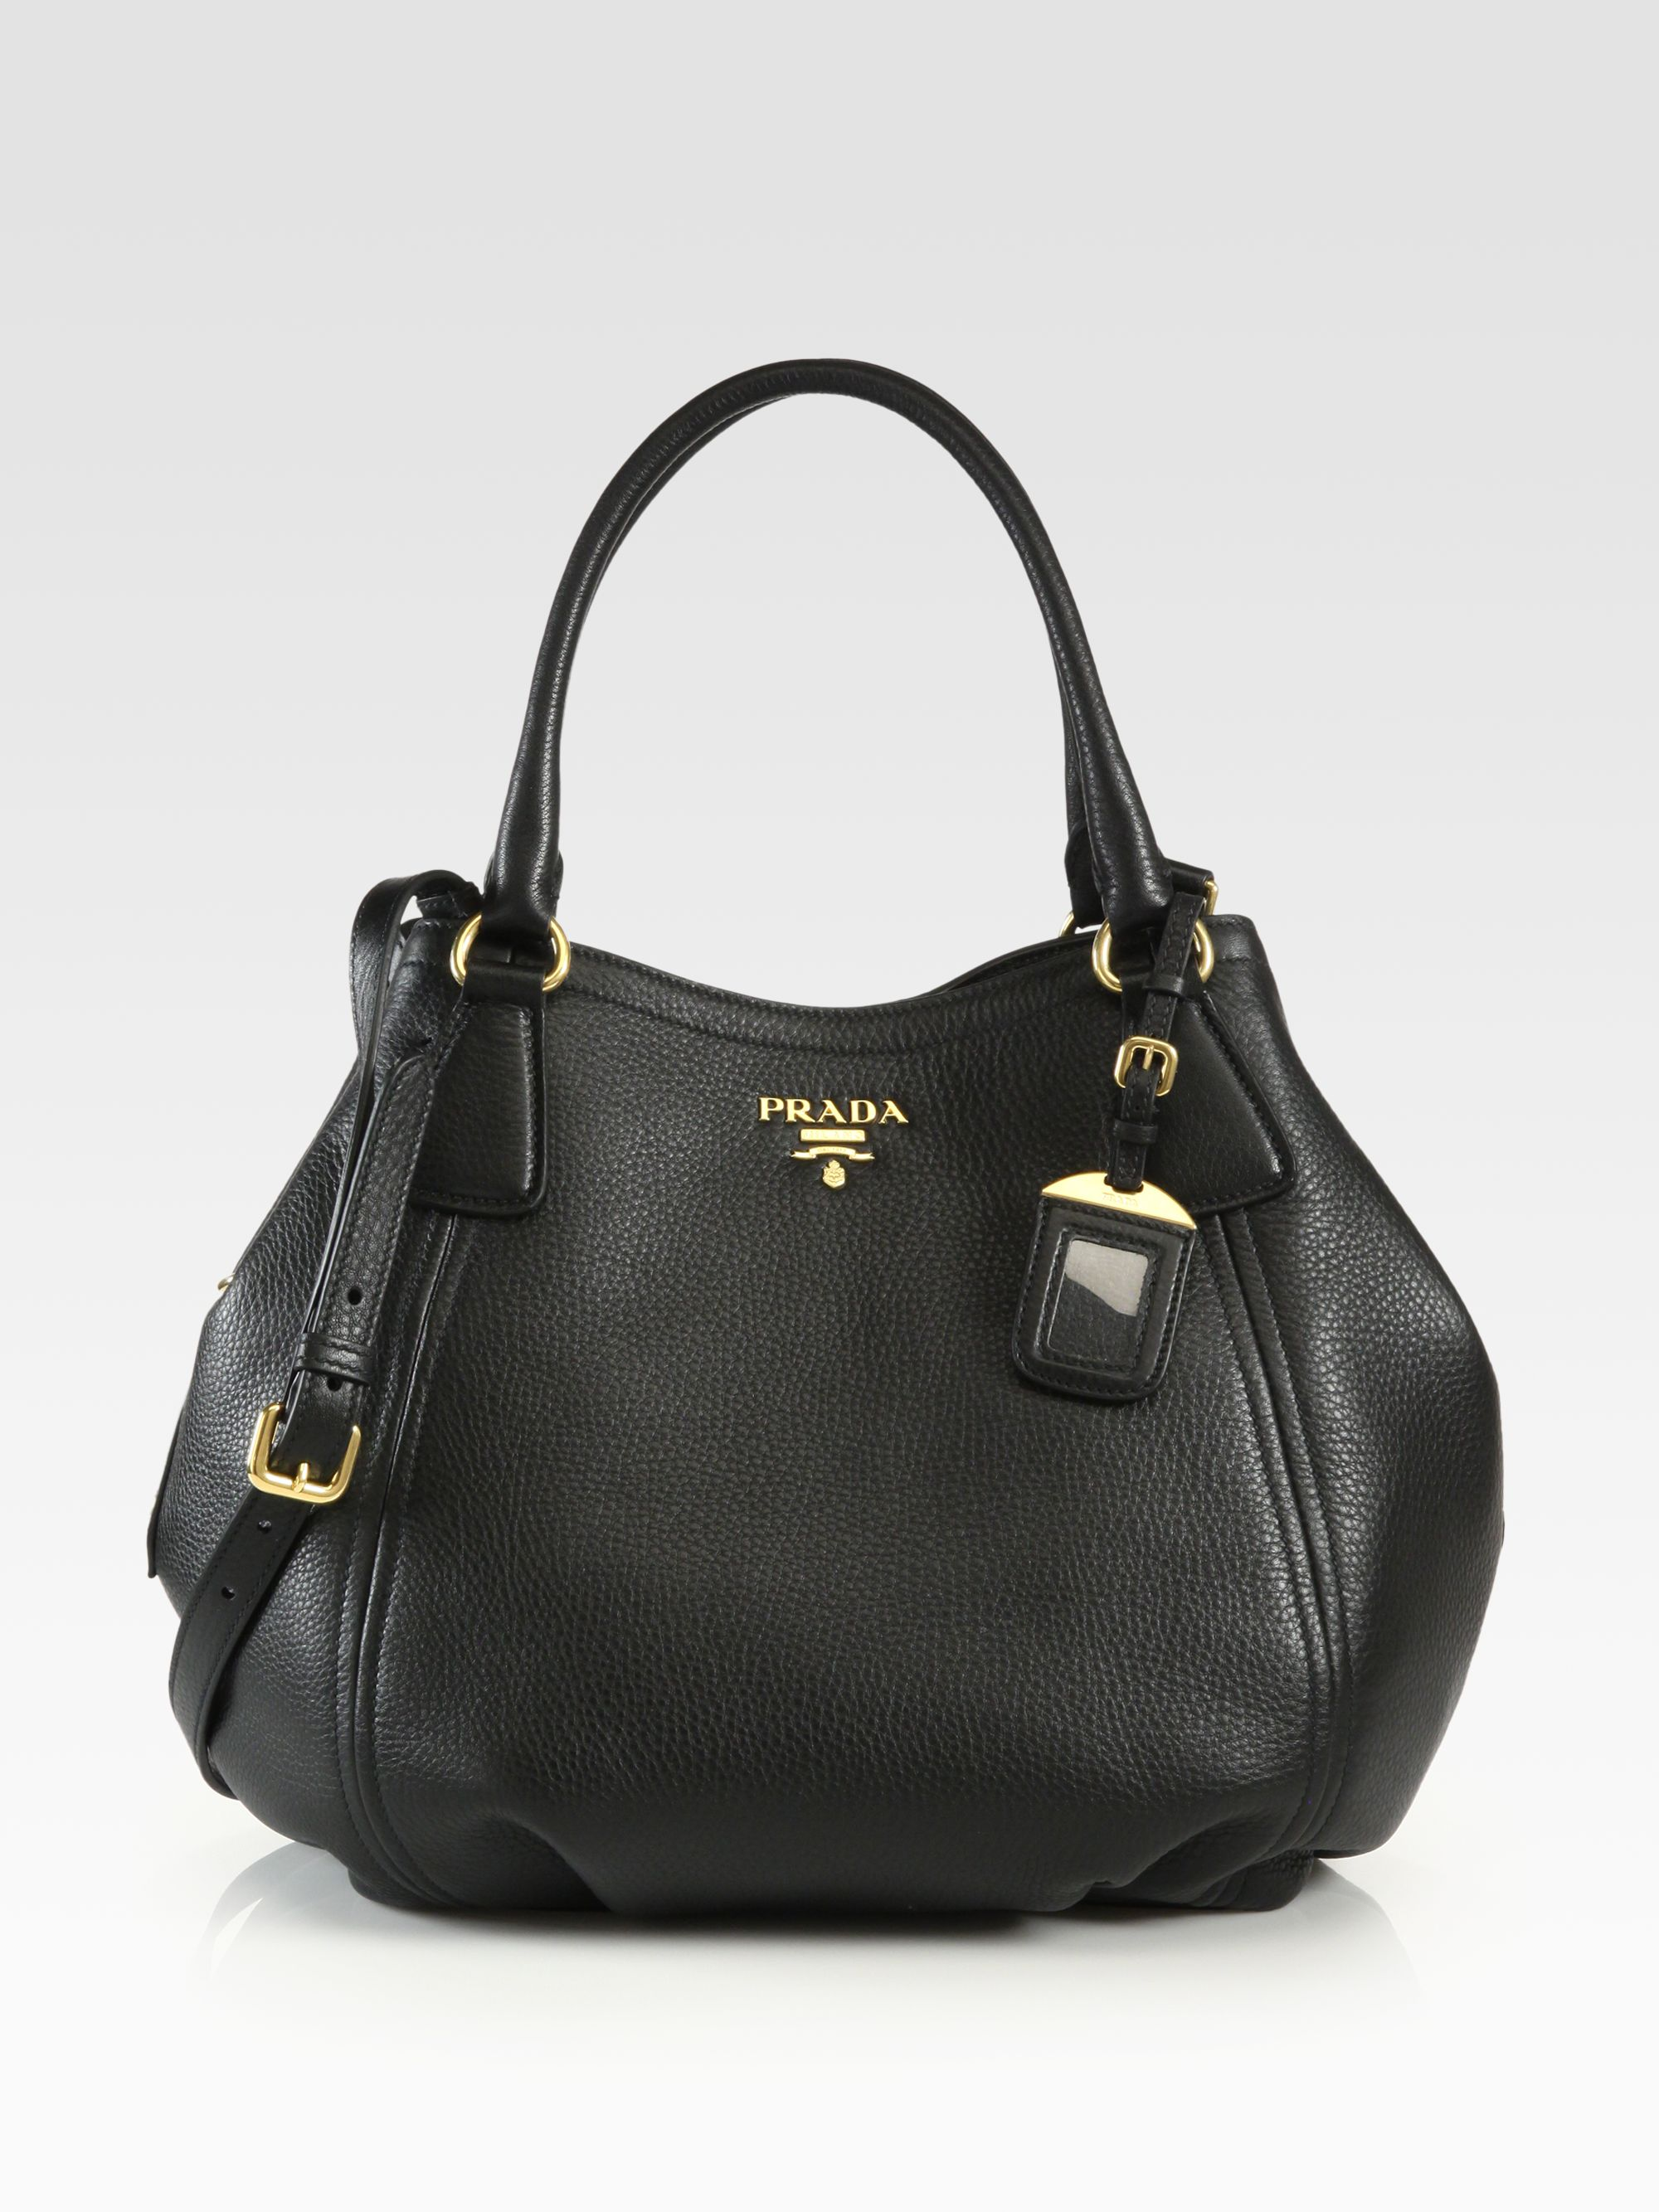 prada handbags for sale - Prada Daino Convertible Satchel in Black | Lyst